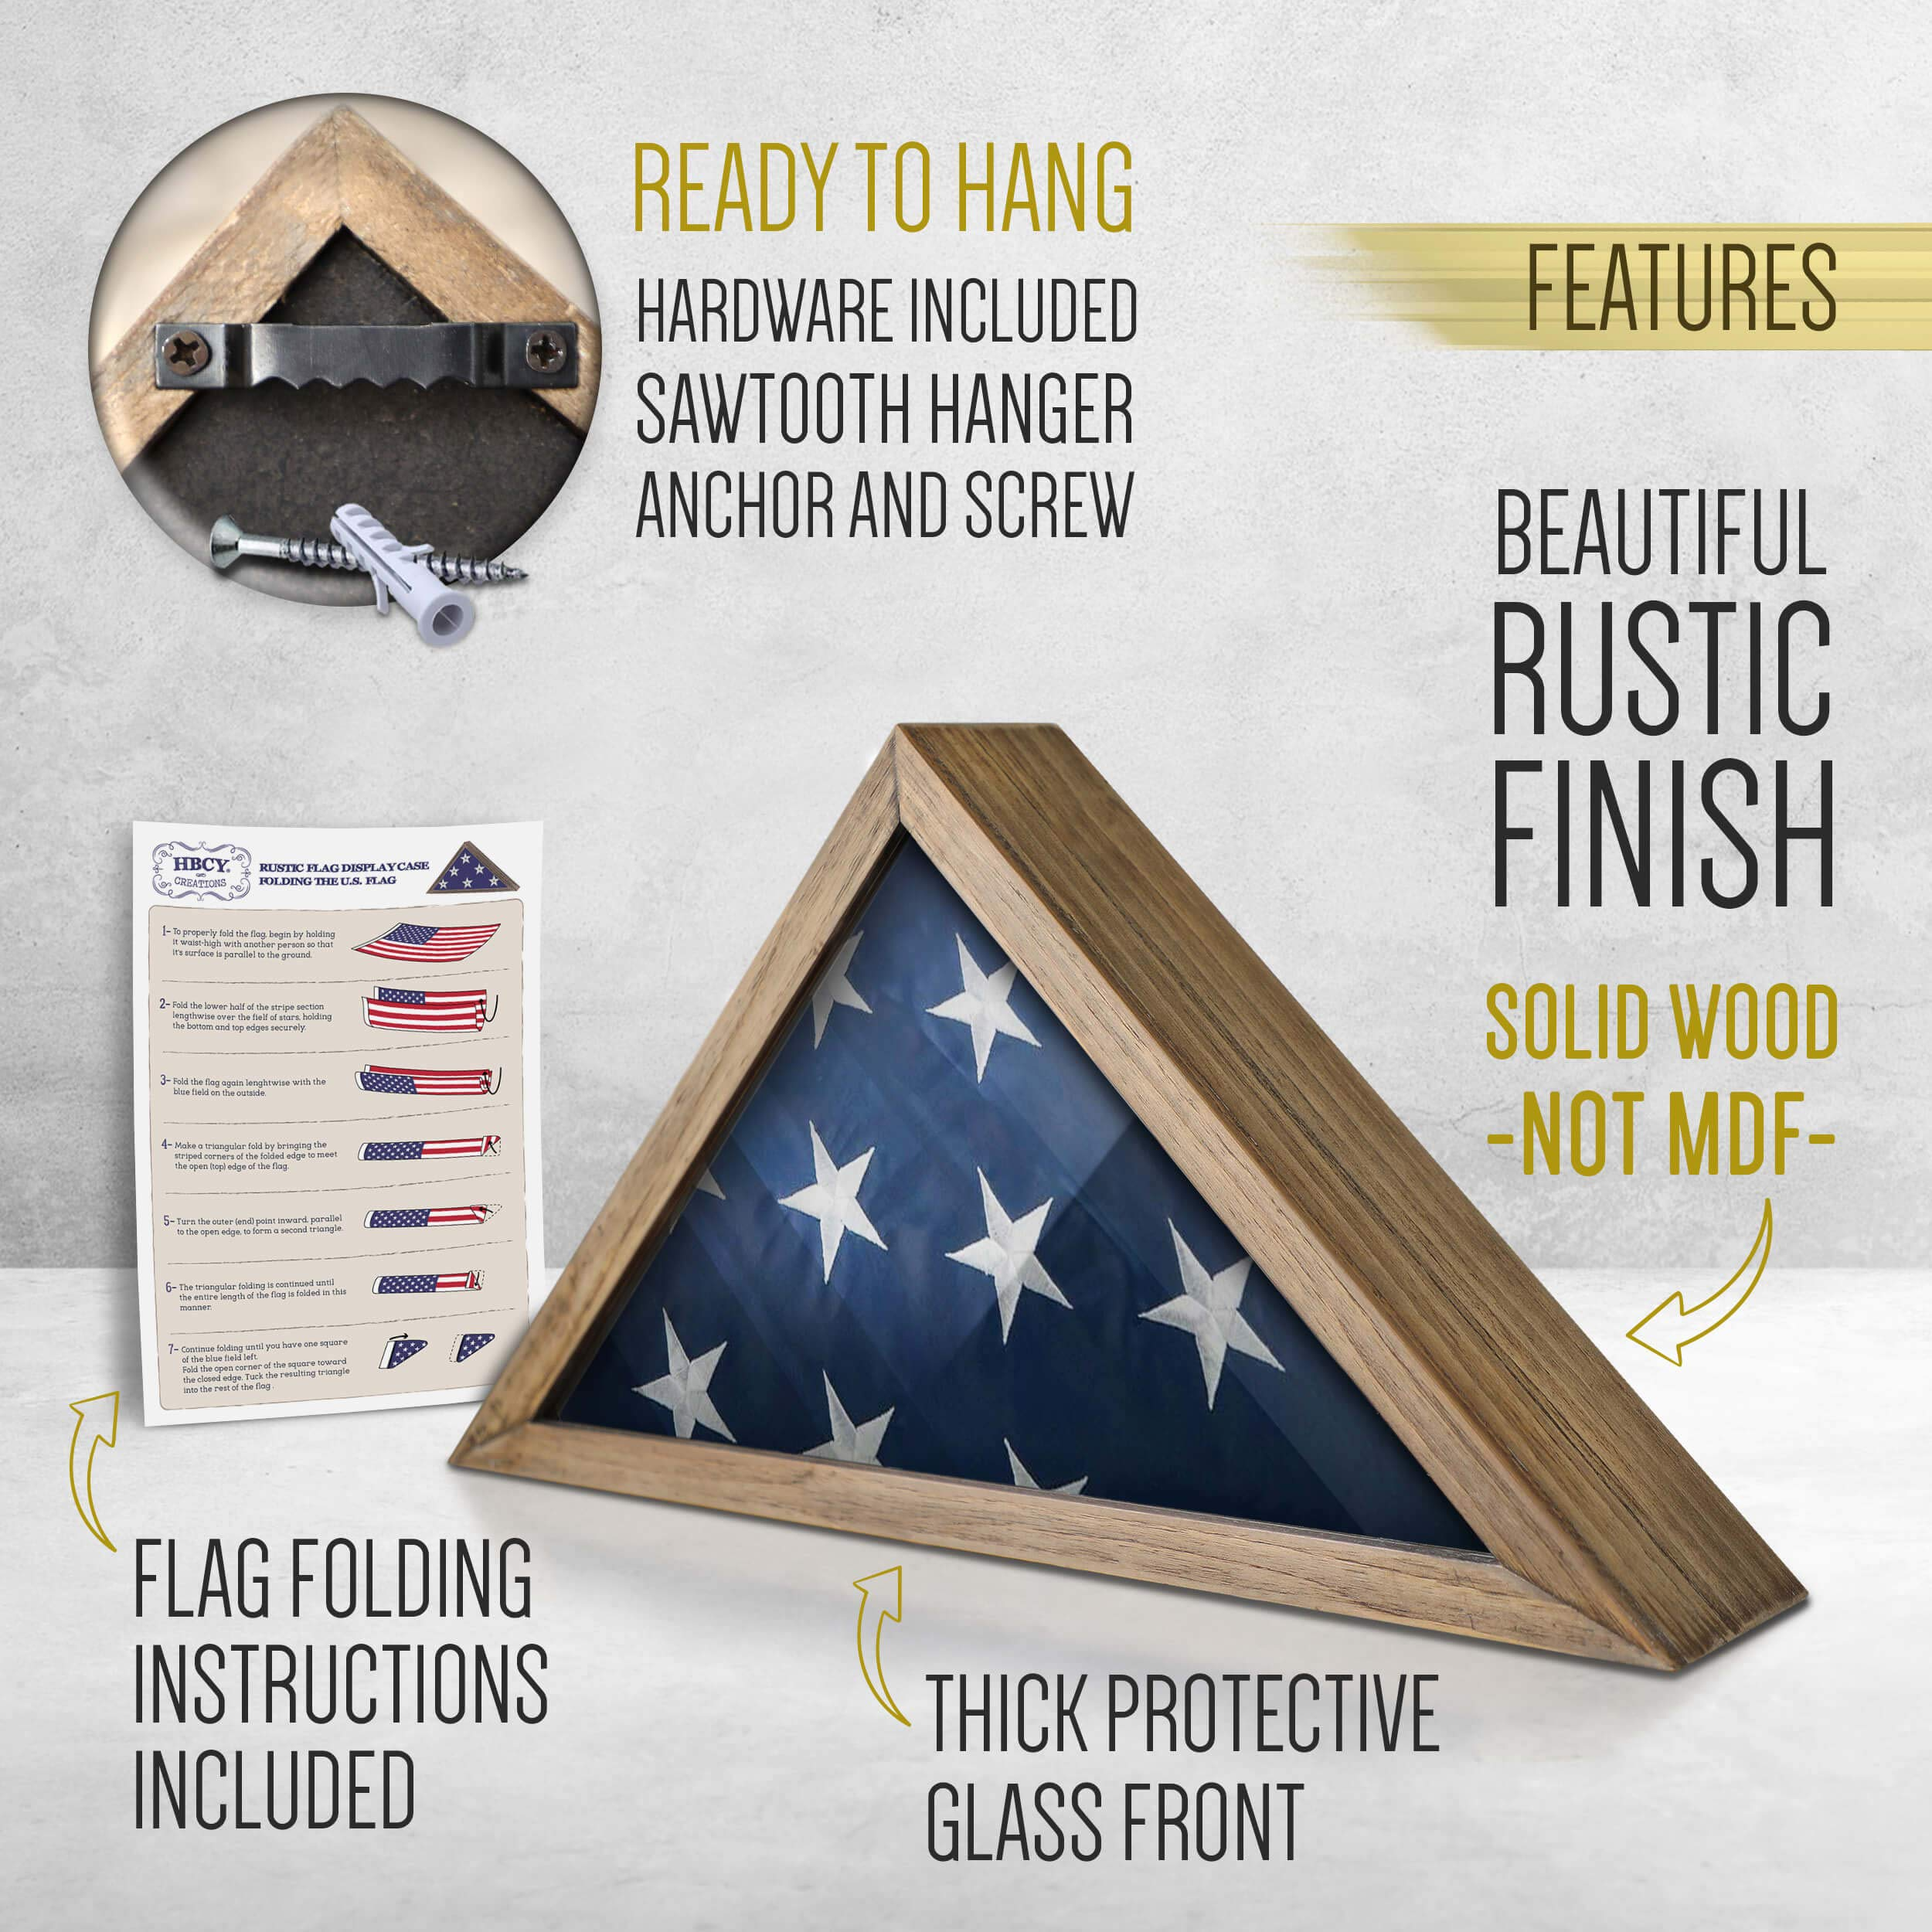 Rustic Flag Case - SOLID WOOD Military Flag Display Case for 9.5 x 5 American Veteran Burial Flag, Wall Mounted Burial Flag Frame, - Flag Shadow Box to display folded flag. (Weathered Wood) by HBCY Creations (Image #2)